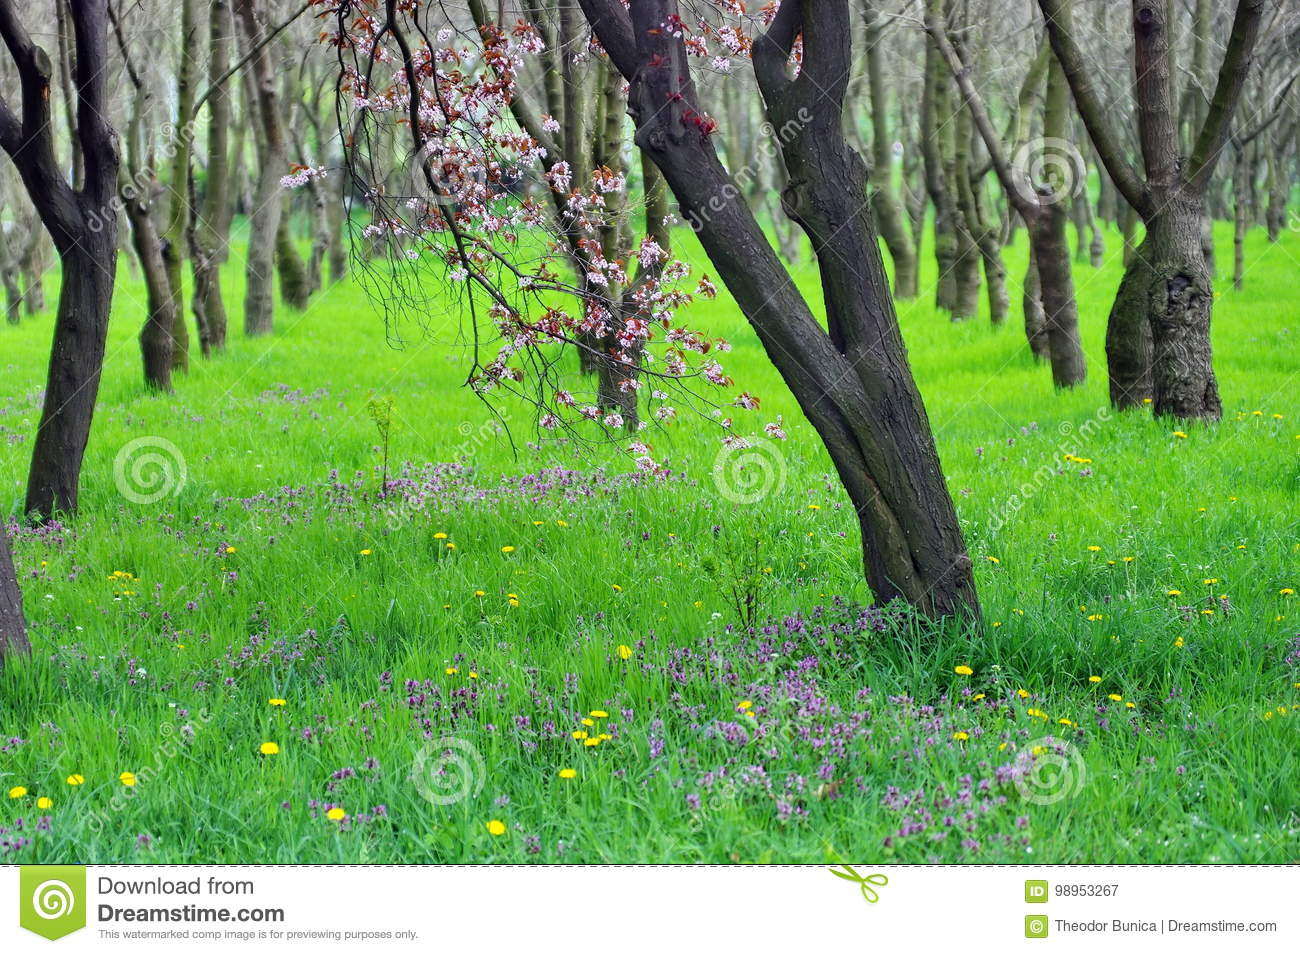 Download Magic Place. Green Nature. Relaxation And Tranquility In The Forest. Spring Landscape Stock Image - Image of environment, natural: 98953267